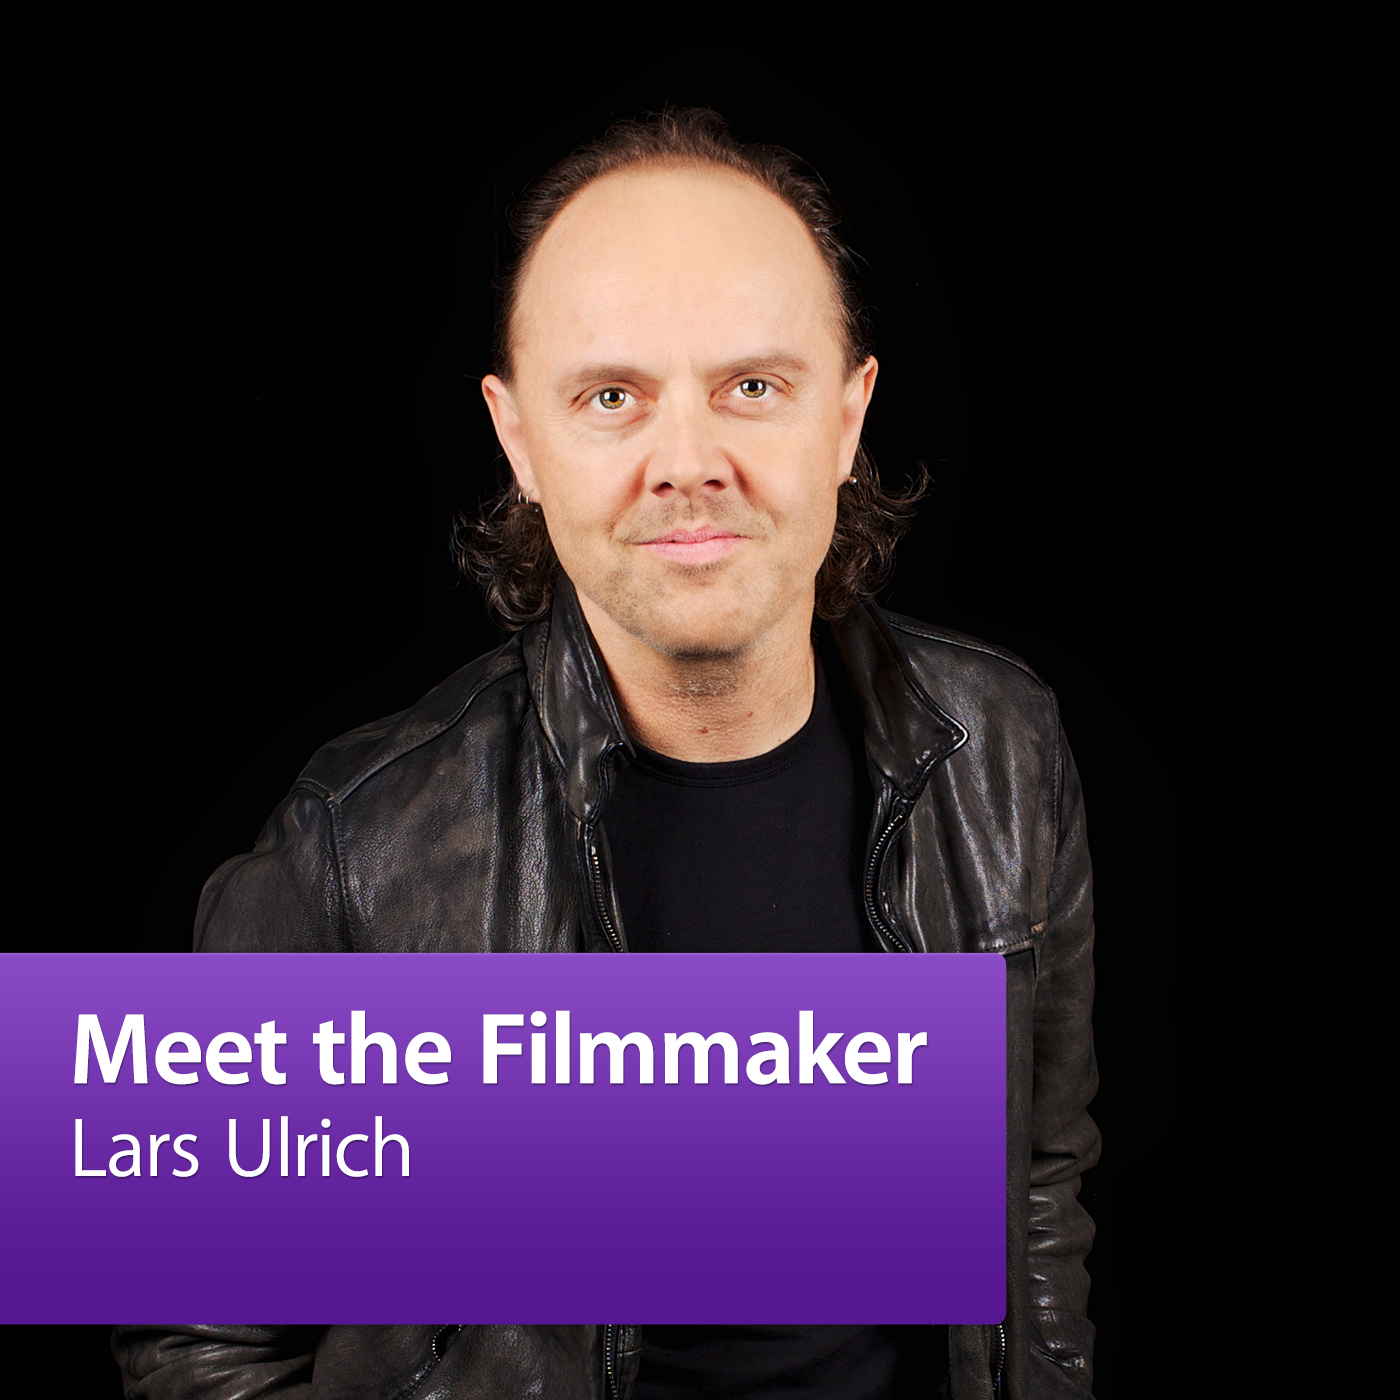 Lars Ulrich: Meet the Filmmaker